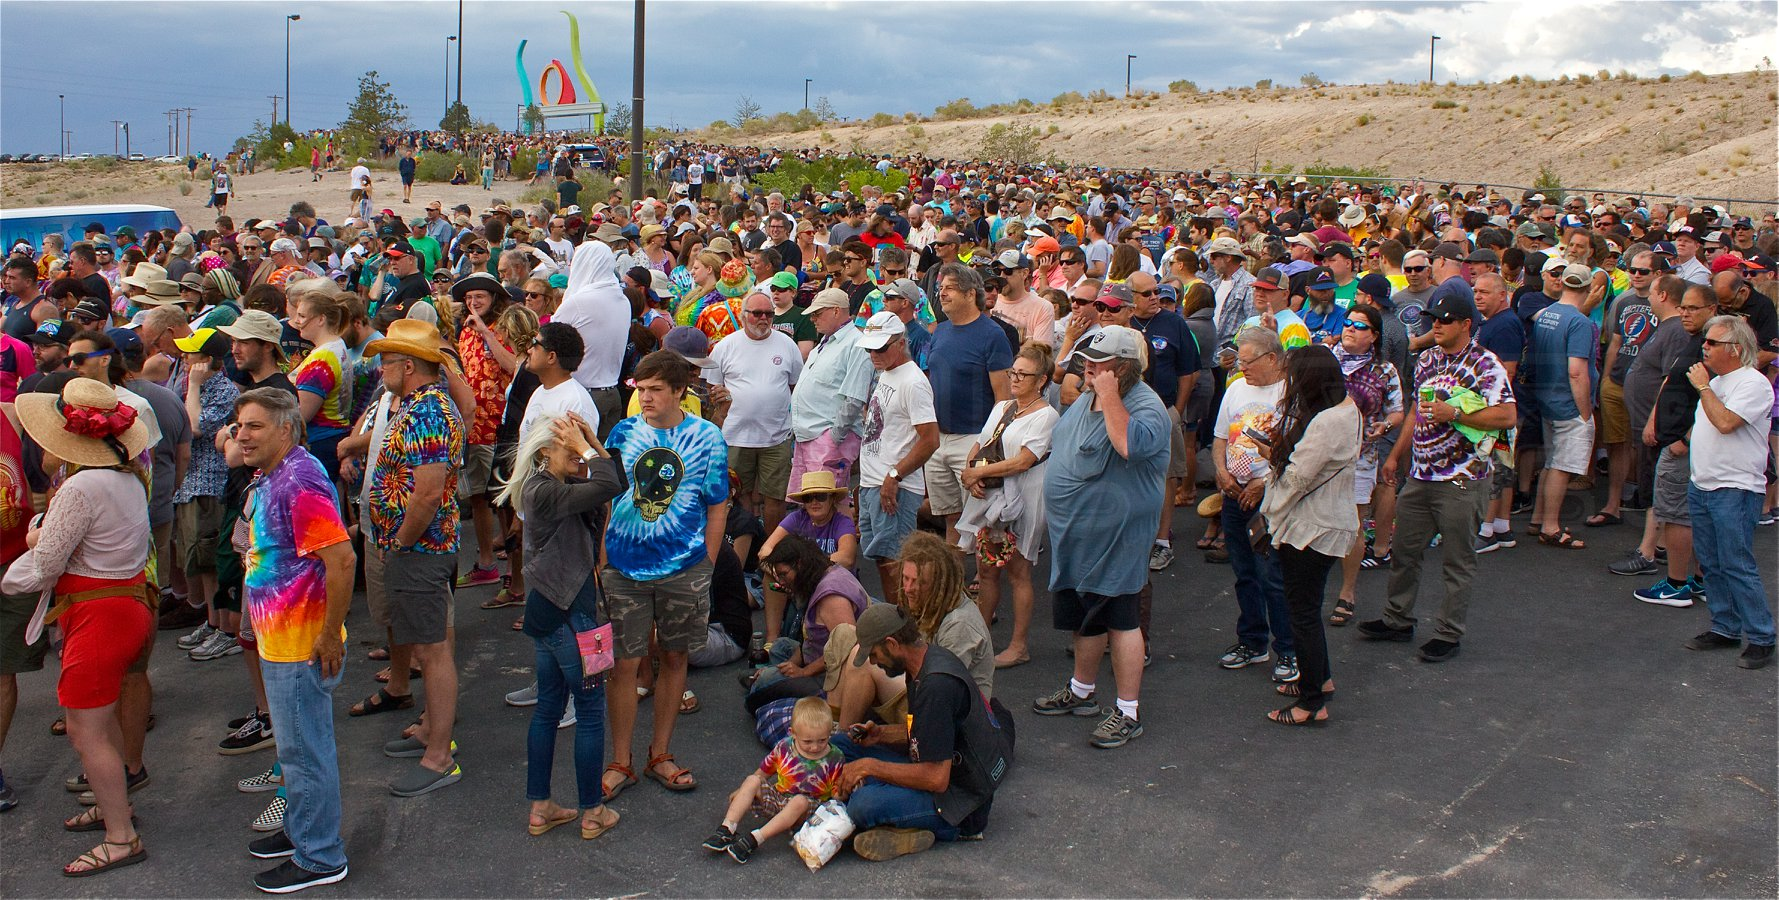 patietly waiting to get in | Isleta Amphitheater